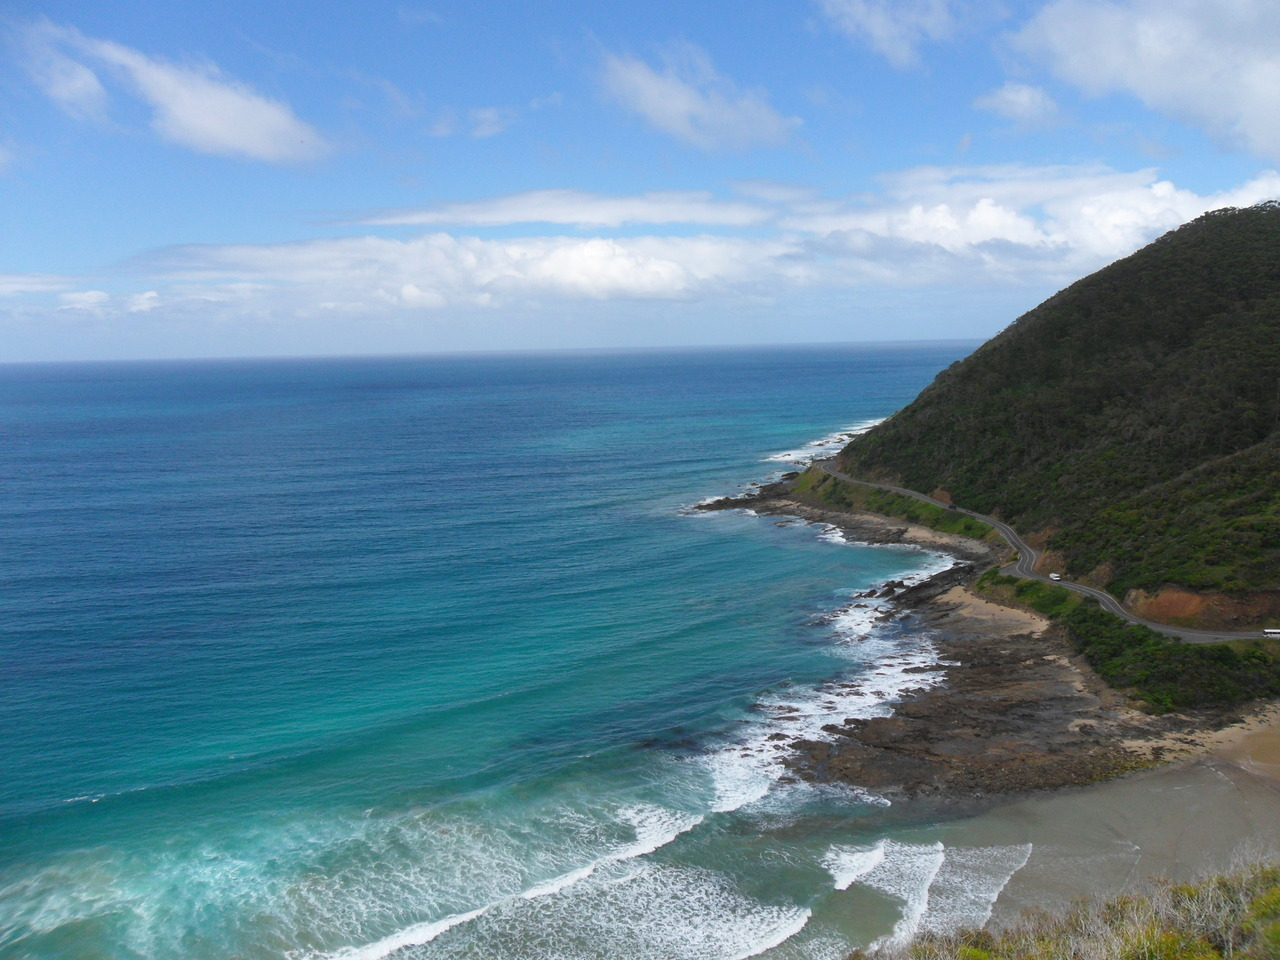 Lookout over the Great Ocean Road in Victoria